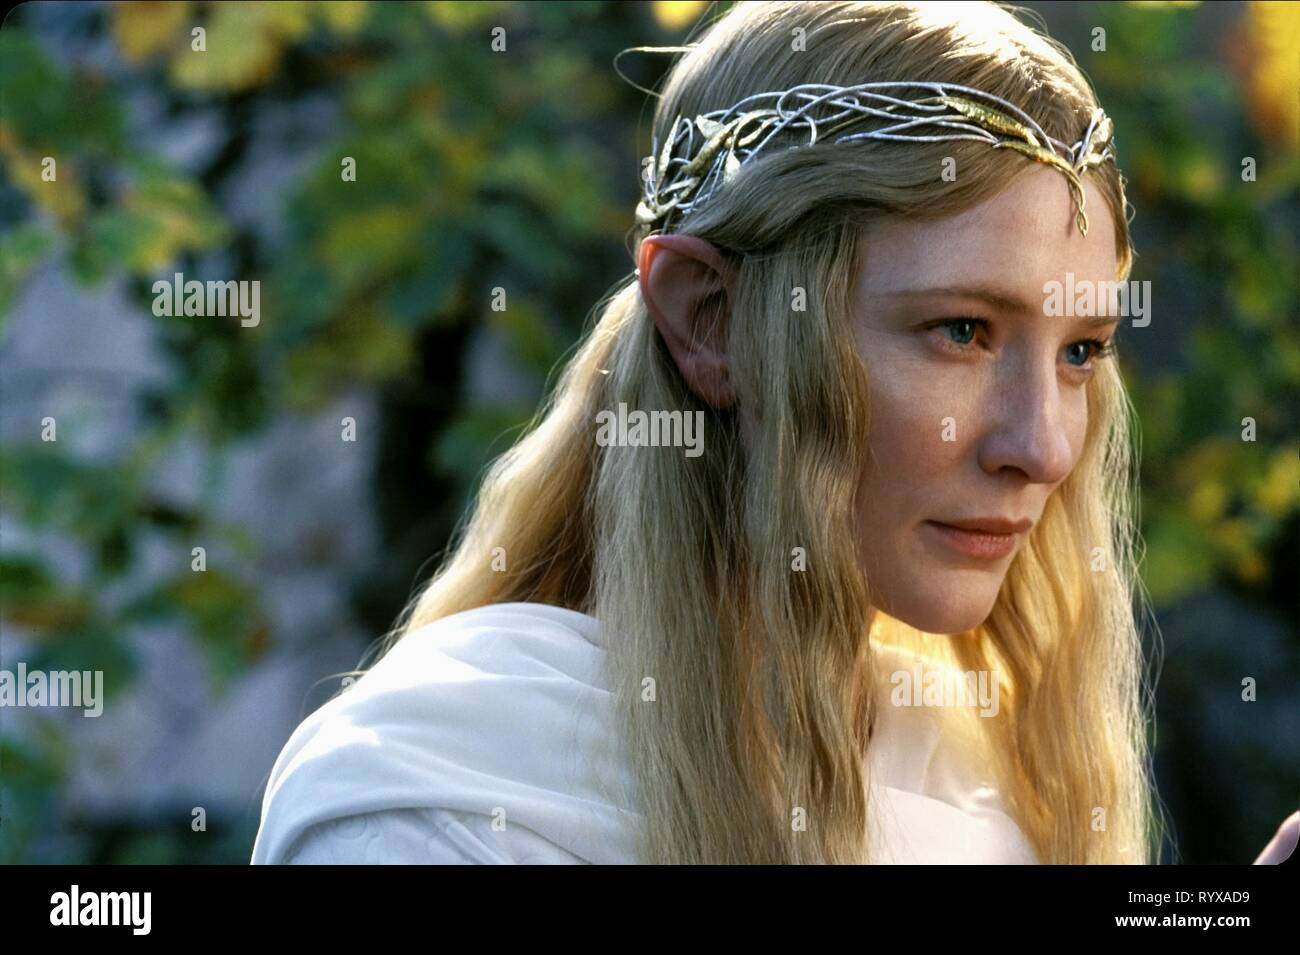 Cate Blanchett The Lord Of The Rings The Fellowship Of The Ring 2001 Stock Photo Alamy